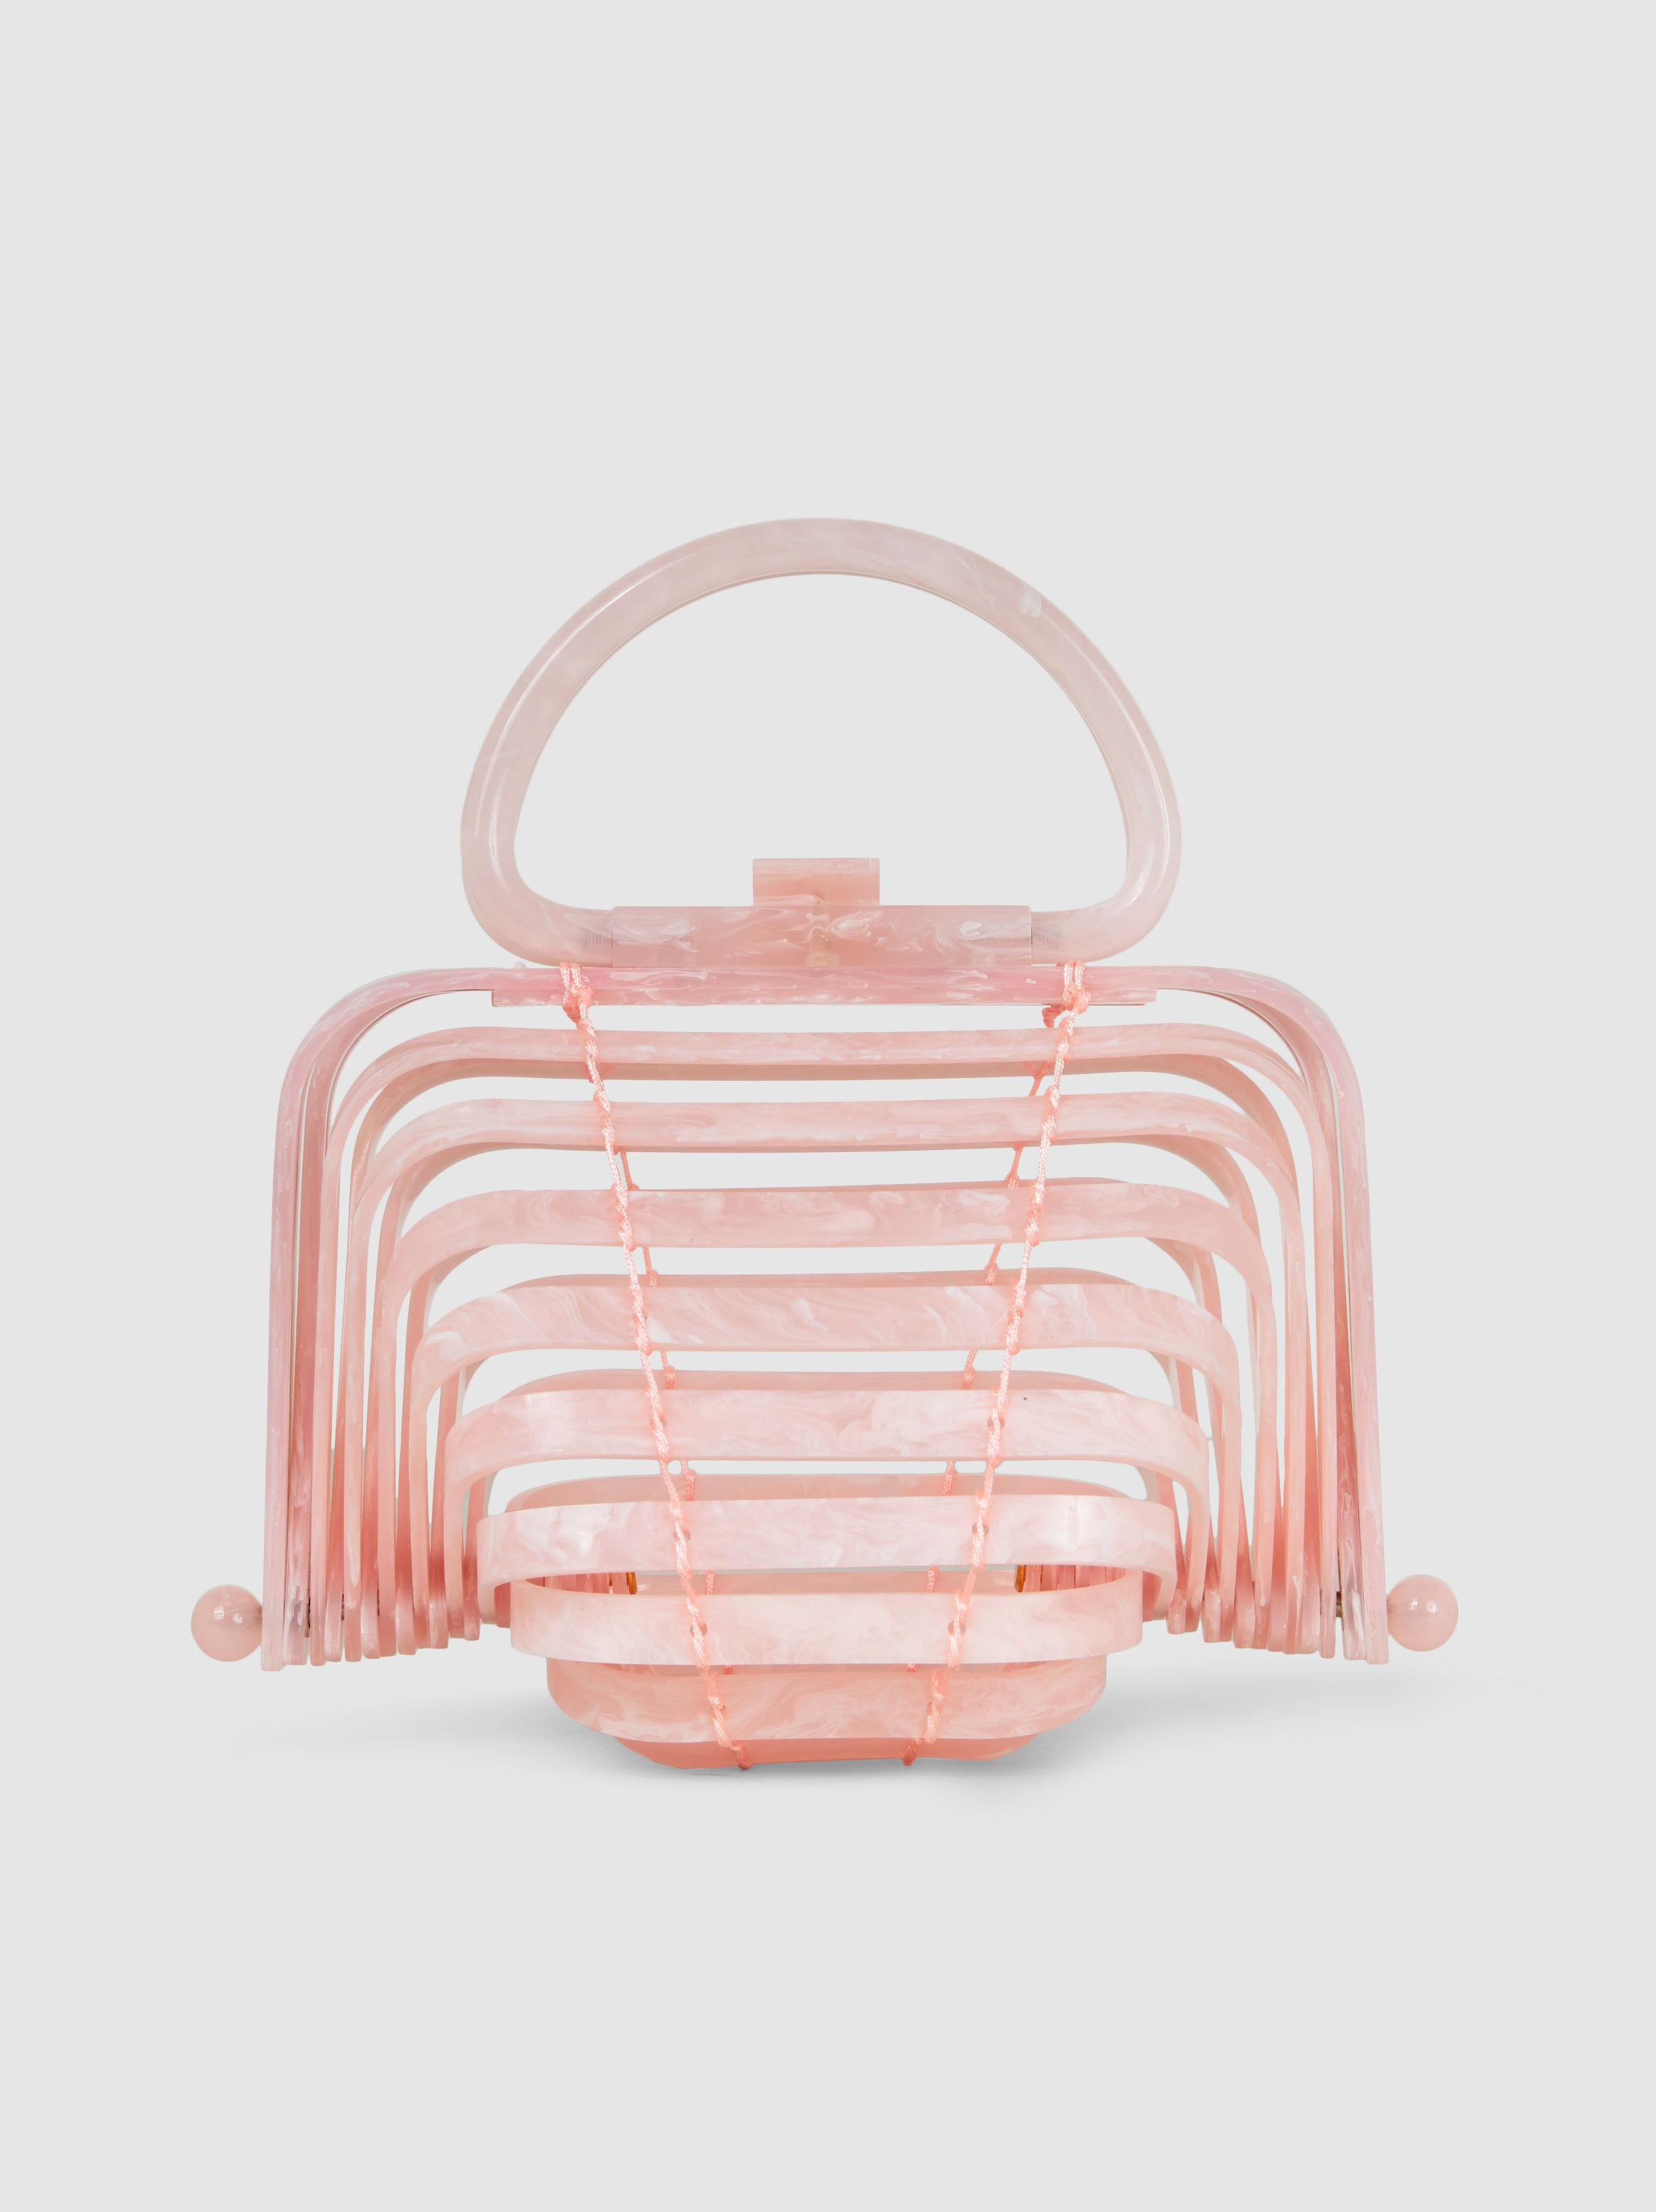 Lyst - Cult Gaia Lilleth Pink Acrylic Top Handle Bag in Pink - Save 1%